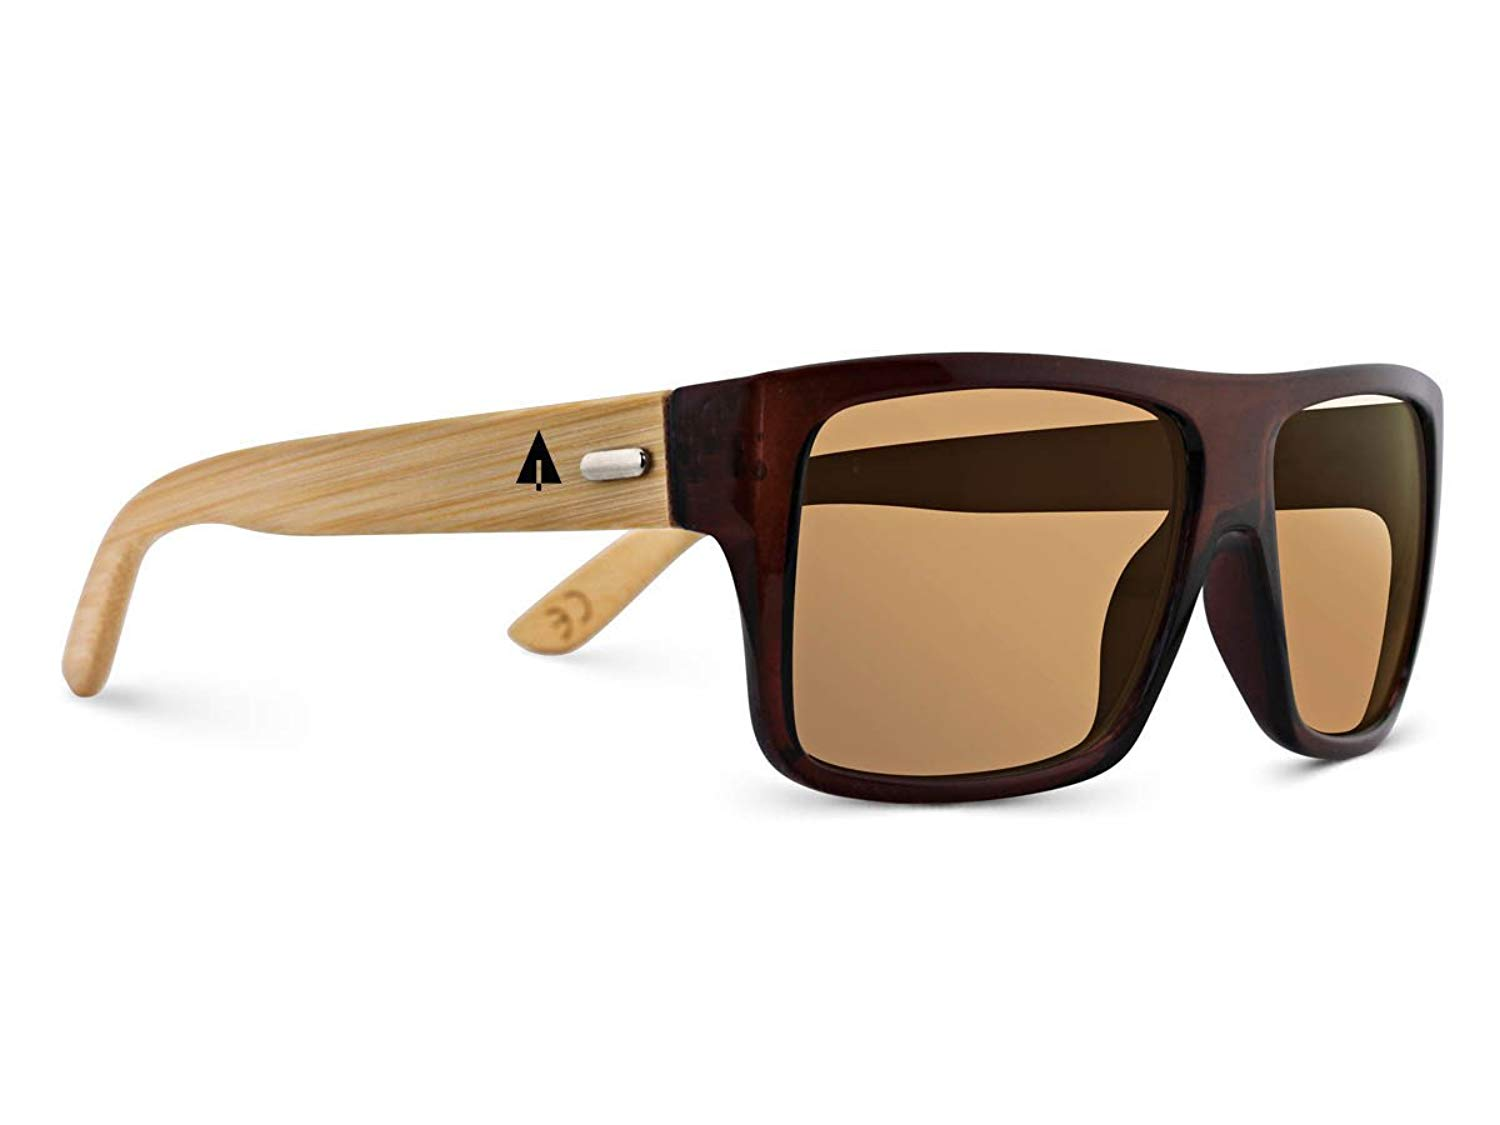 1aa929ac0b0 TREEHUT Wooden Bamboo Sunglasses Temples Classic Aviator Retro Square Wood  Sunglasses